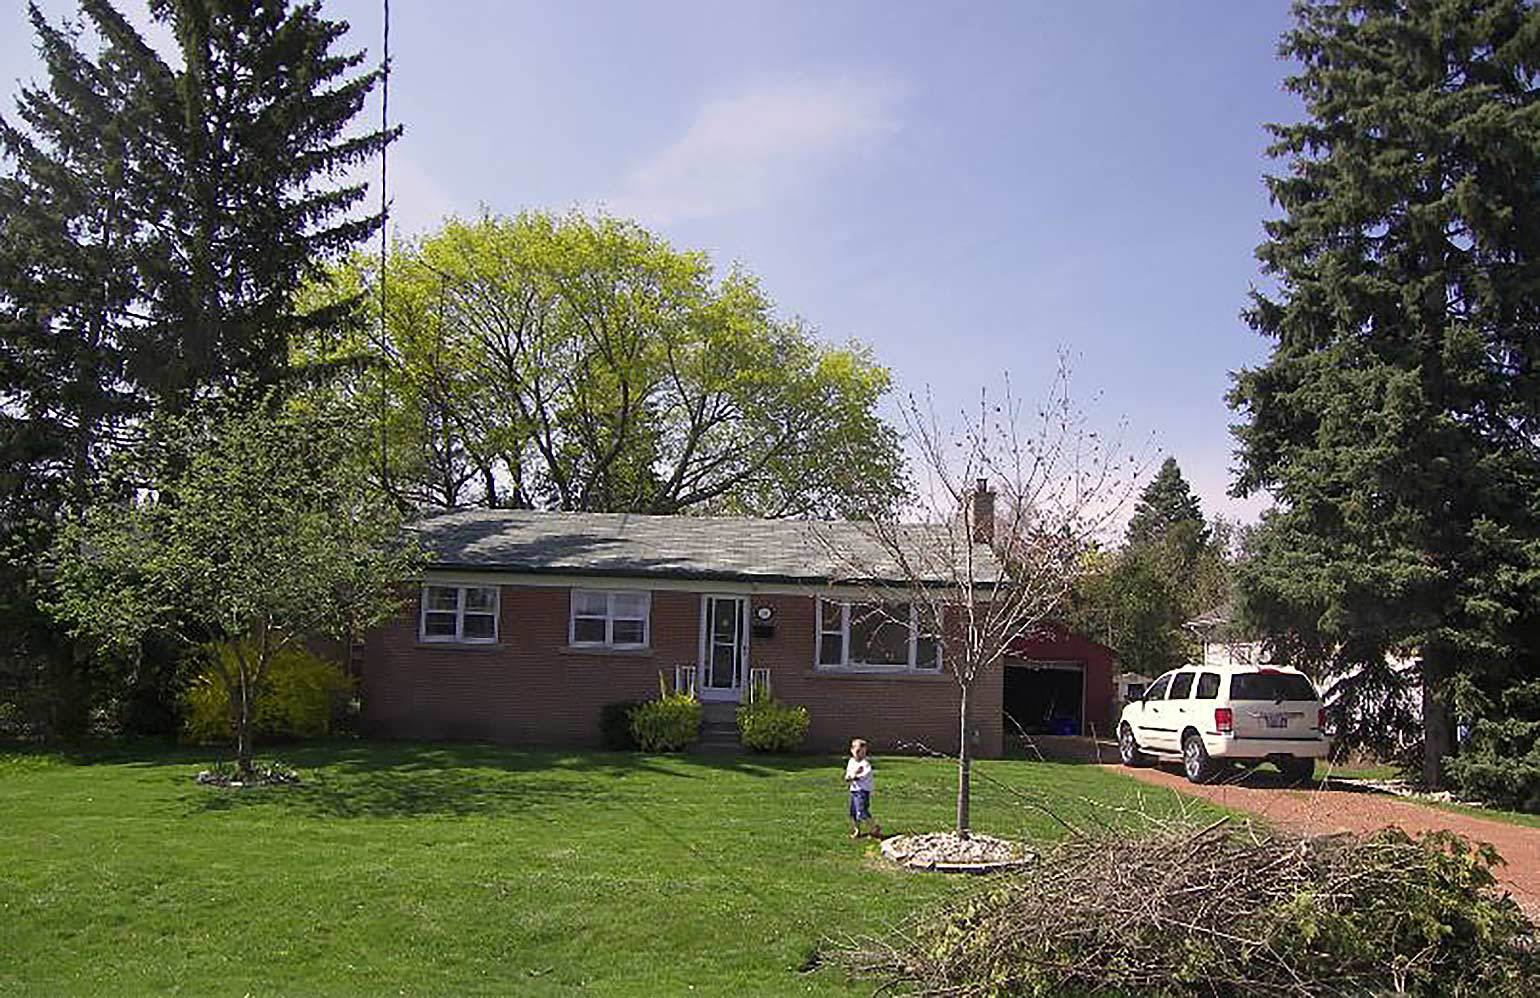 Image of Bryan & Sara's first home. A humble, red Brick bungalow.